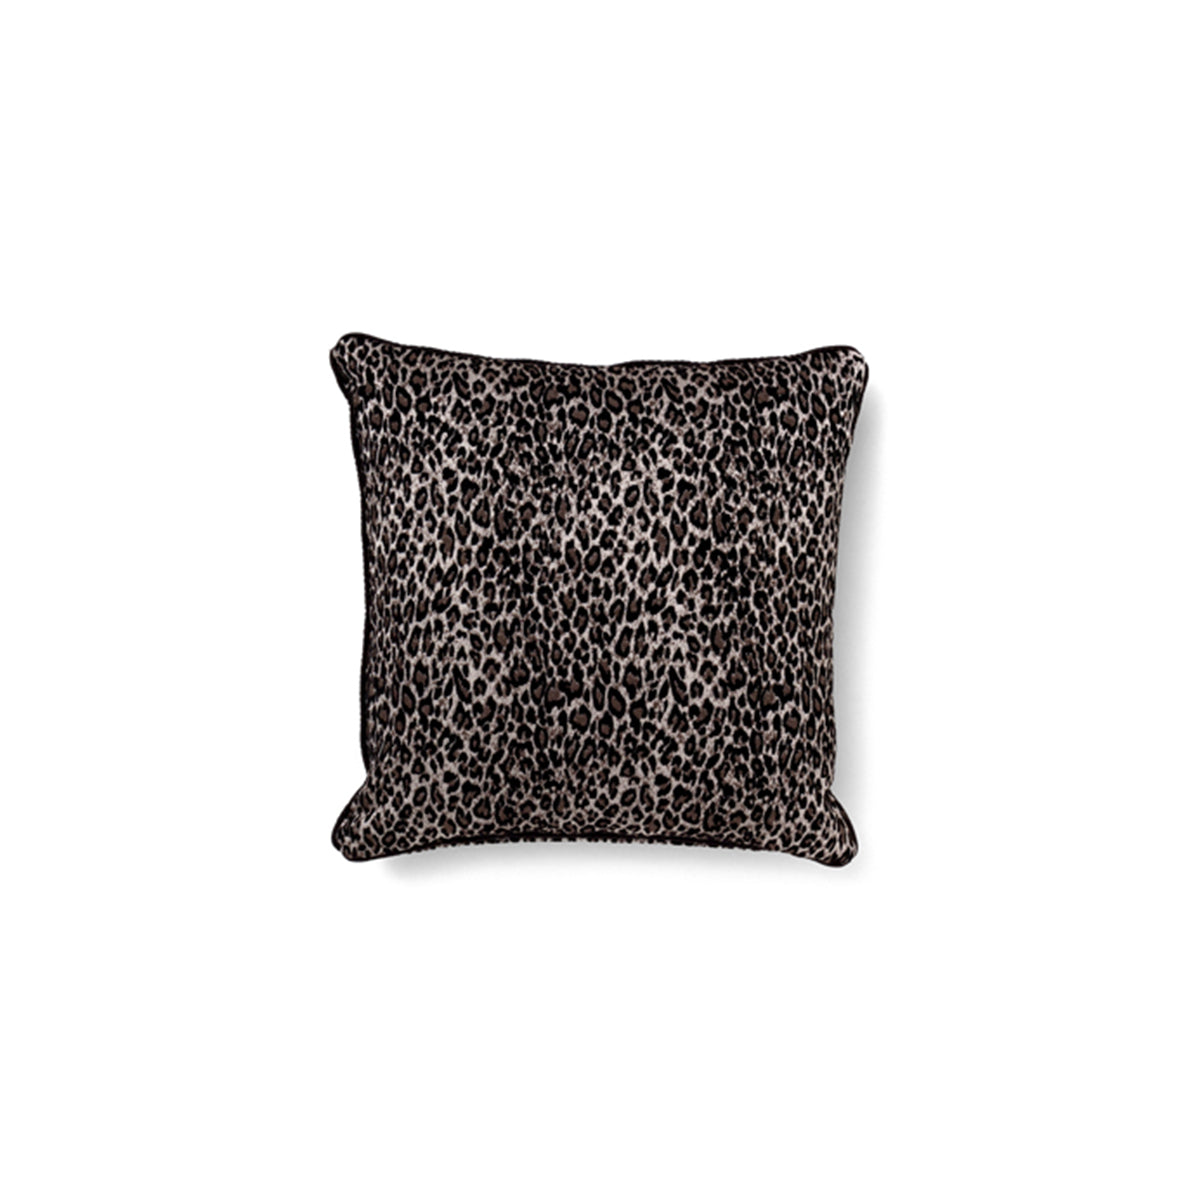 Pardus Black Pillow by Brabbu